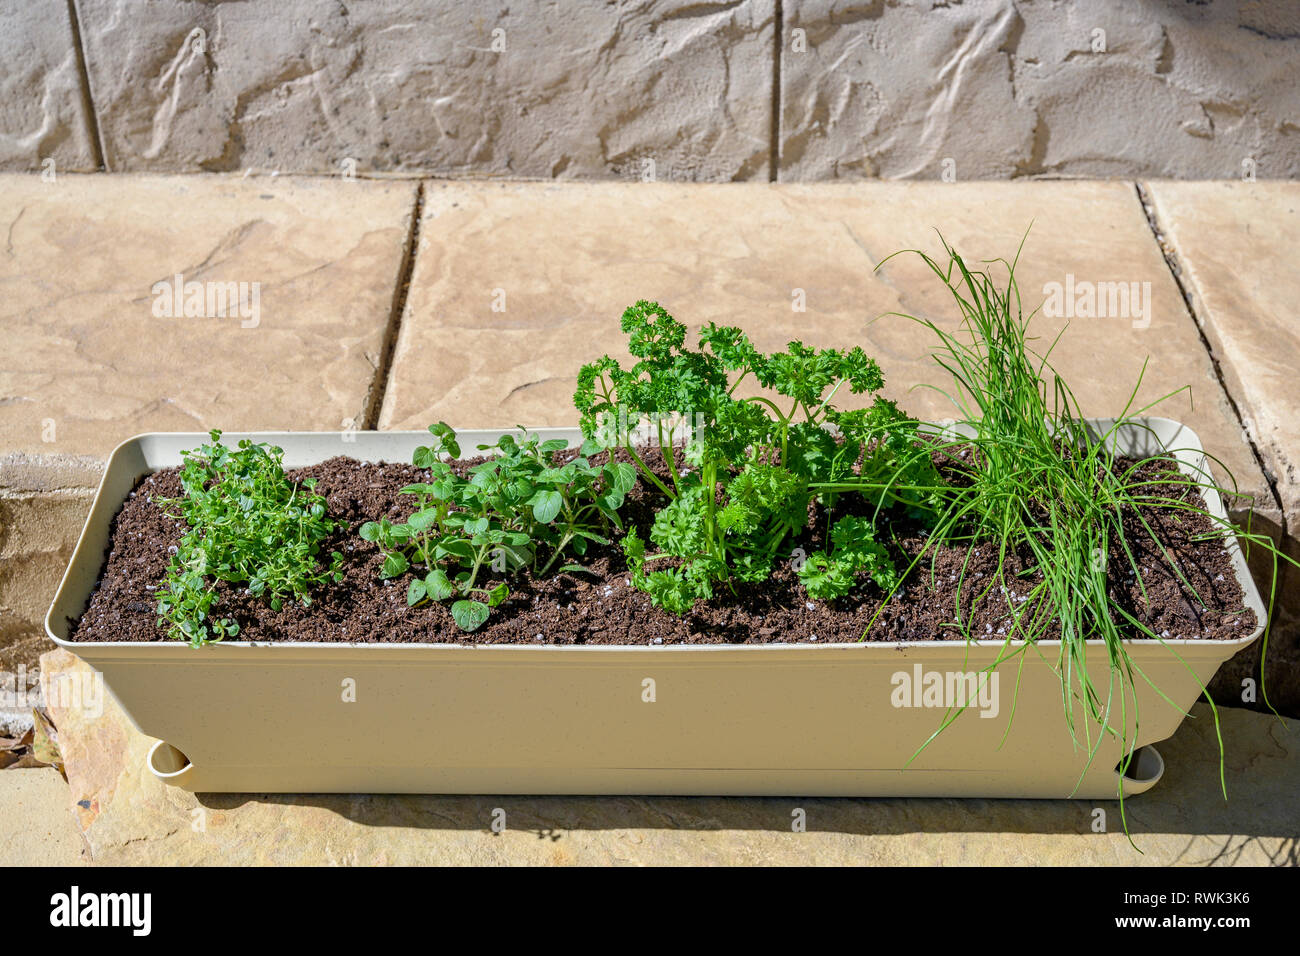 Organic garden fresh herbs, oregano, chives, parsley, and lemon thyme growing in a window box. Stock Photo